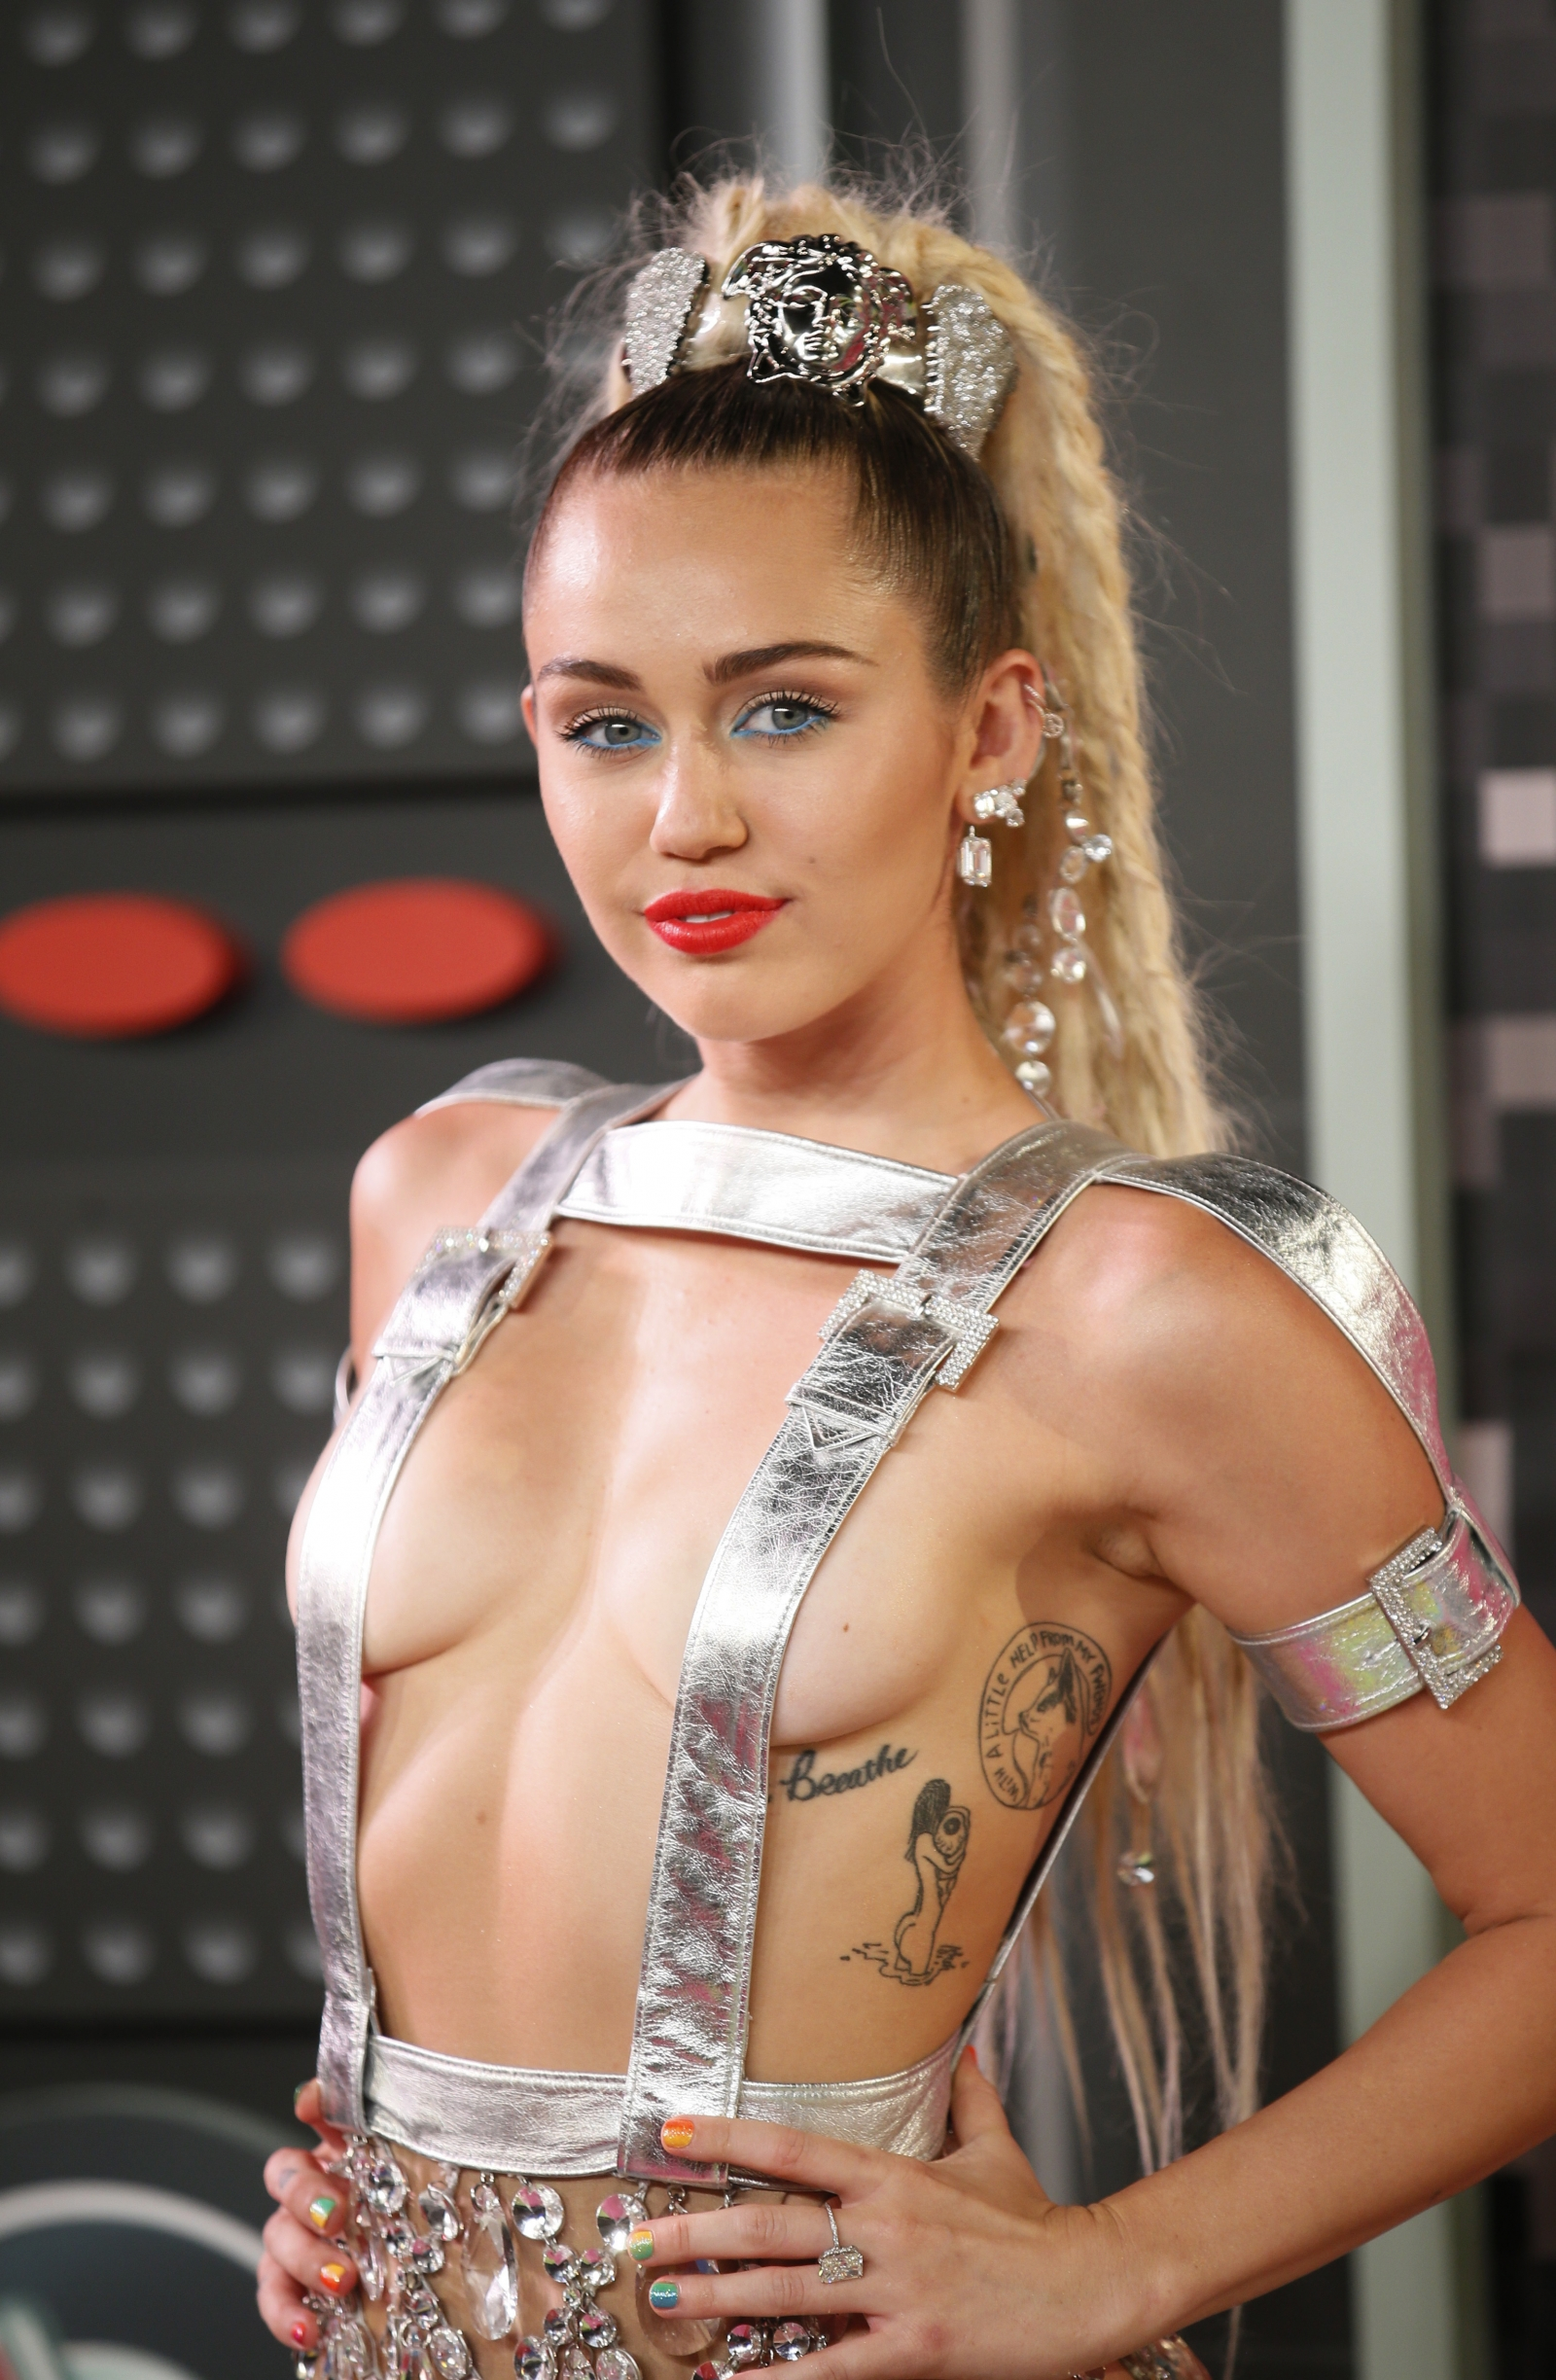 Miley cyrus boob fall out